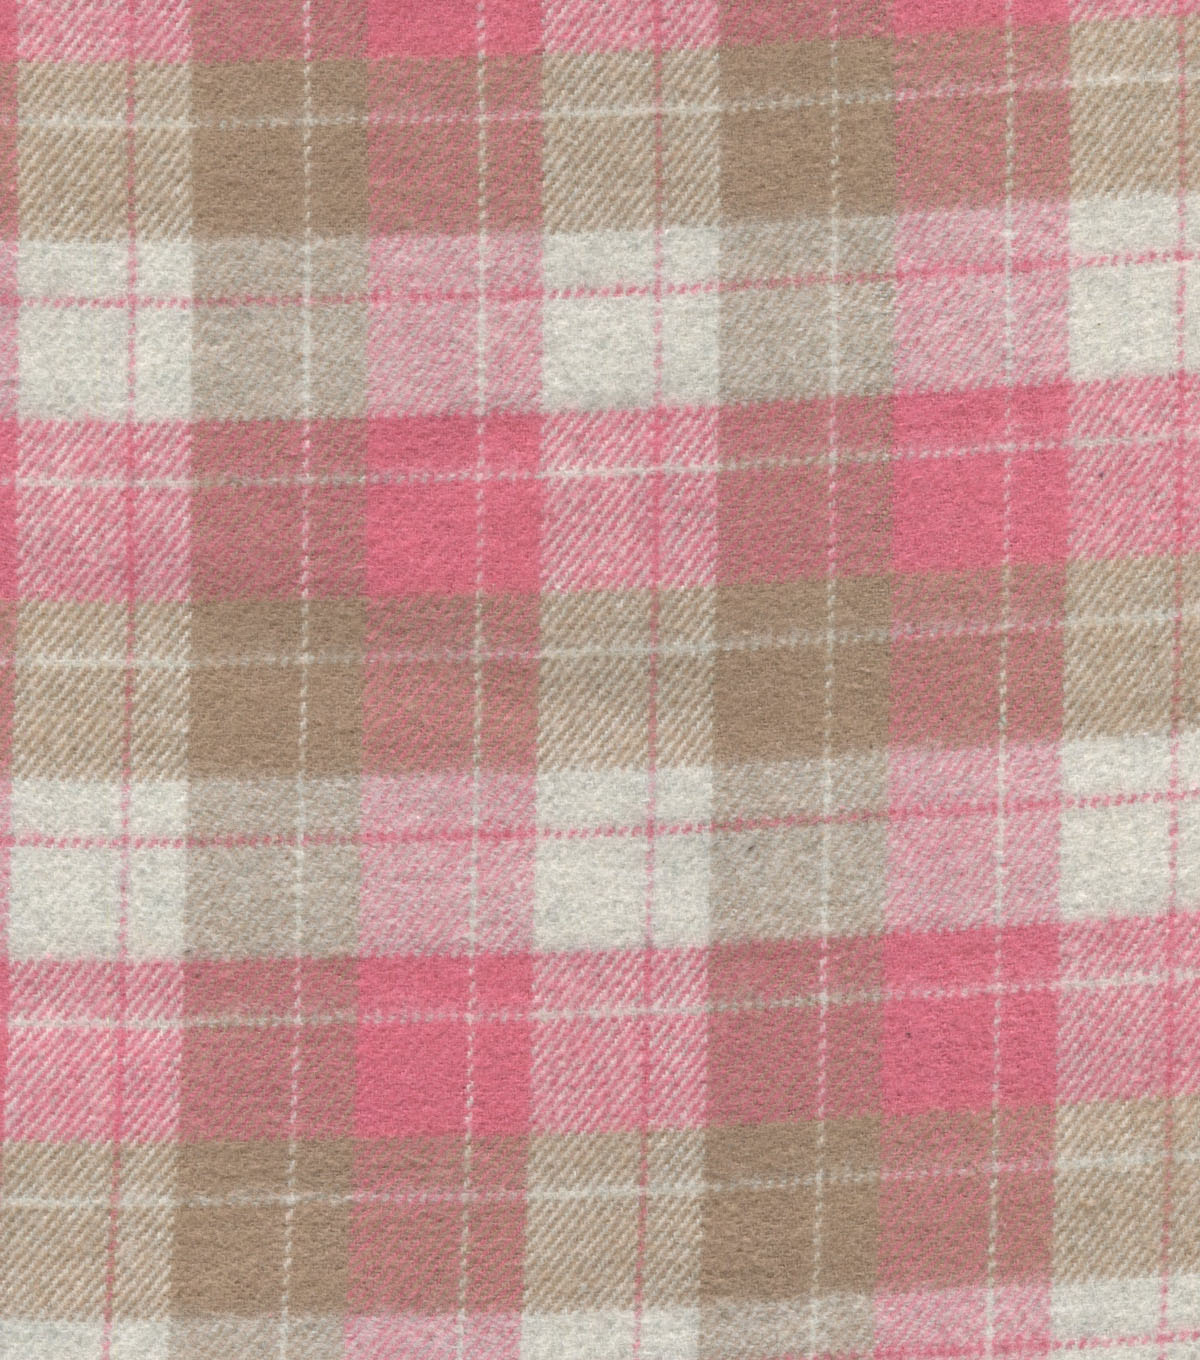 Plaid Brush Cotton-Taupe Pink